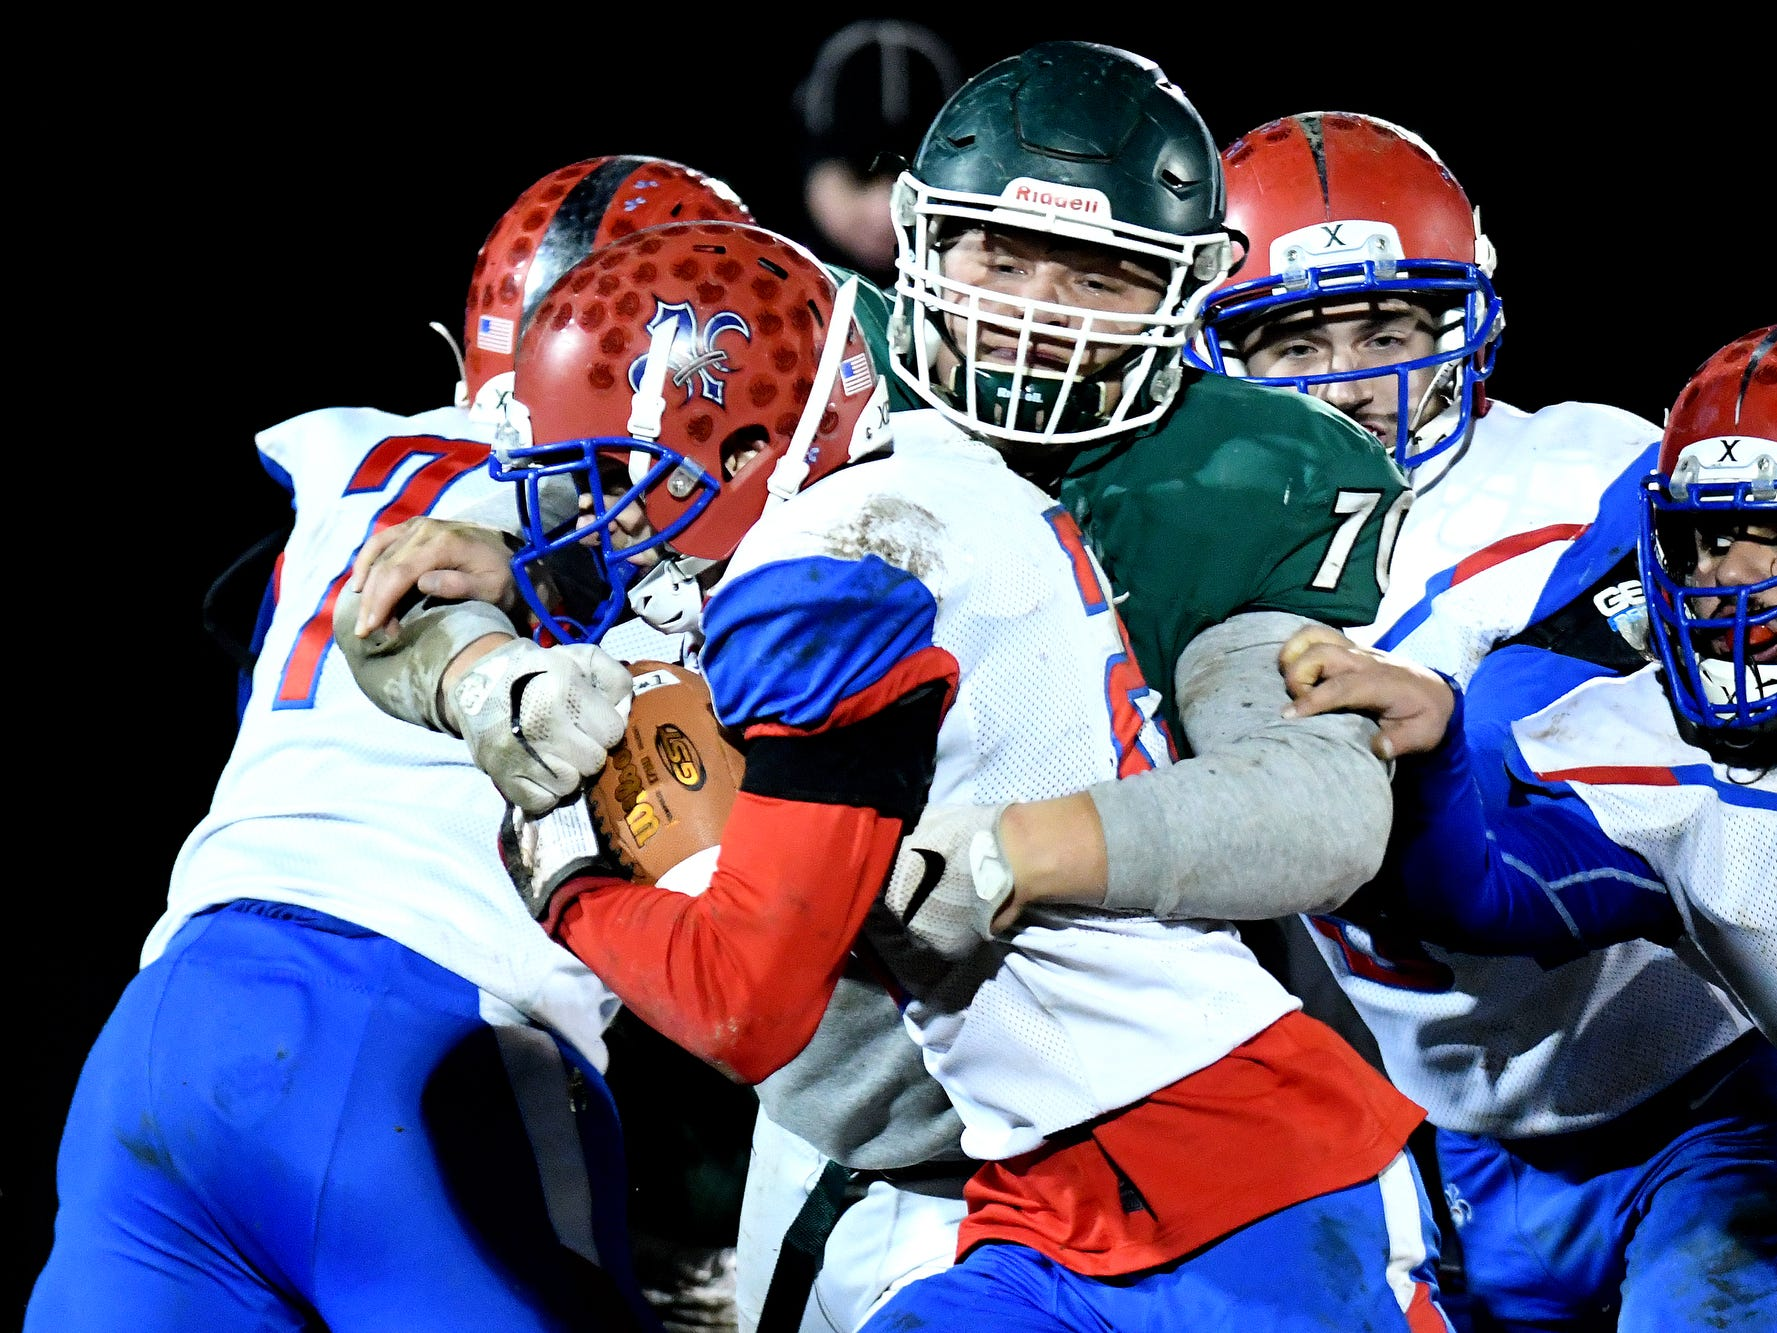 Williamston's Eston Miles, right, tackles St. Clair's Ethan Mahn during the second quarter on Friday, Nov. 9, 2018, in Williamston.